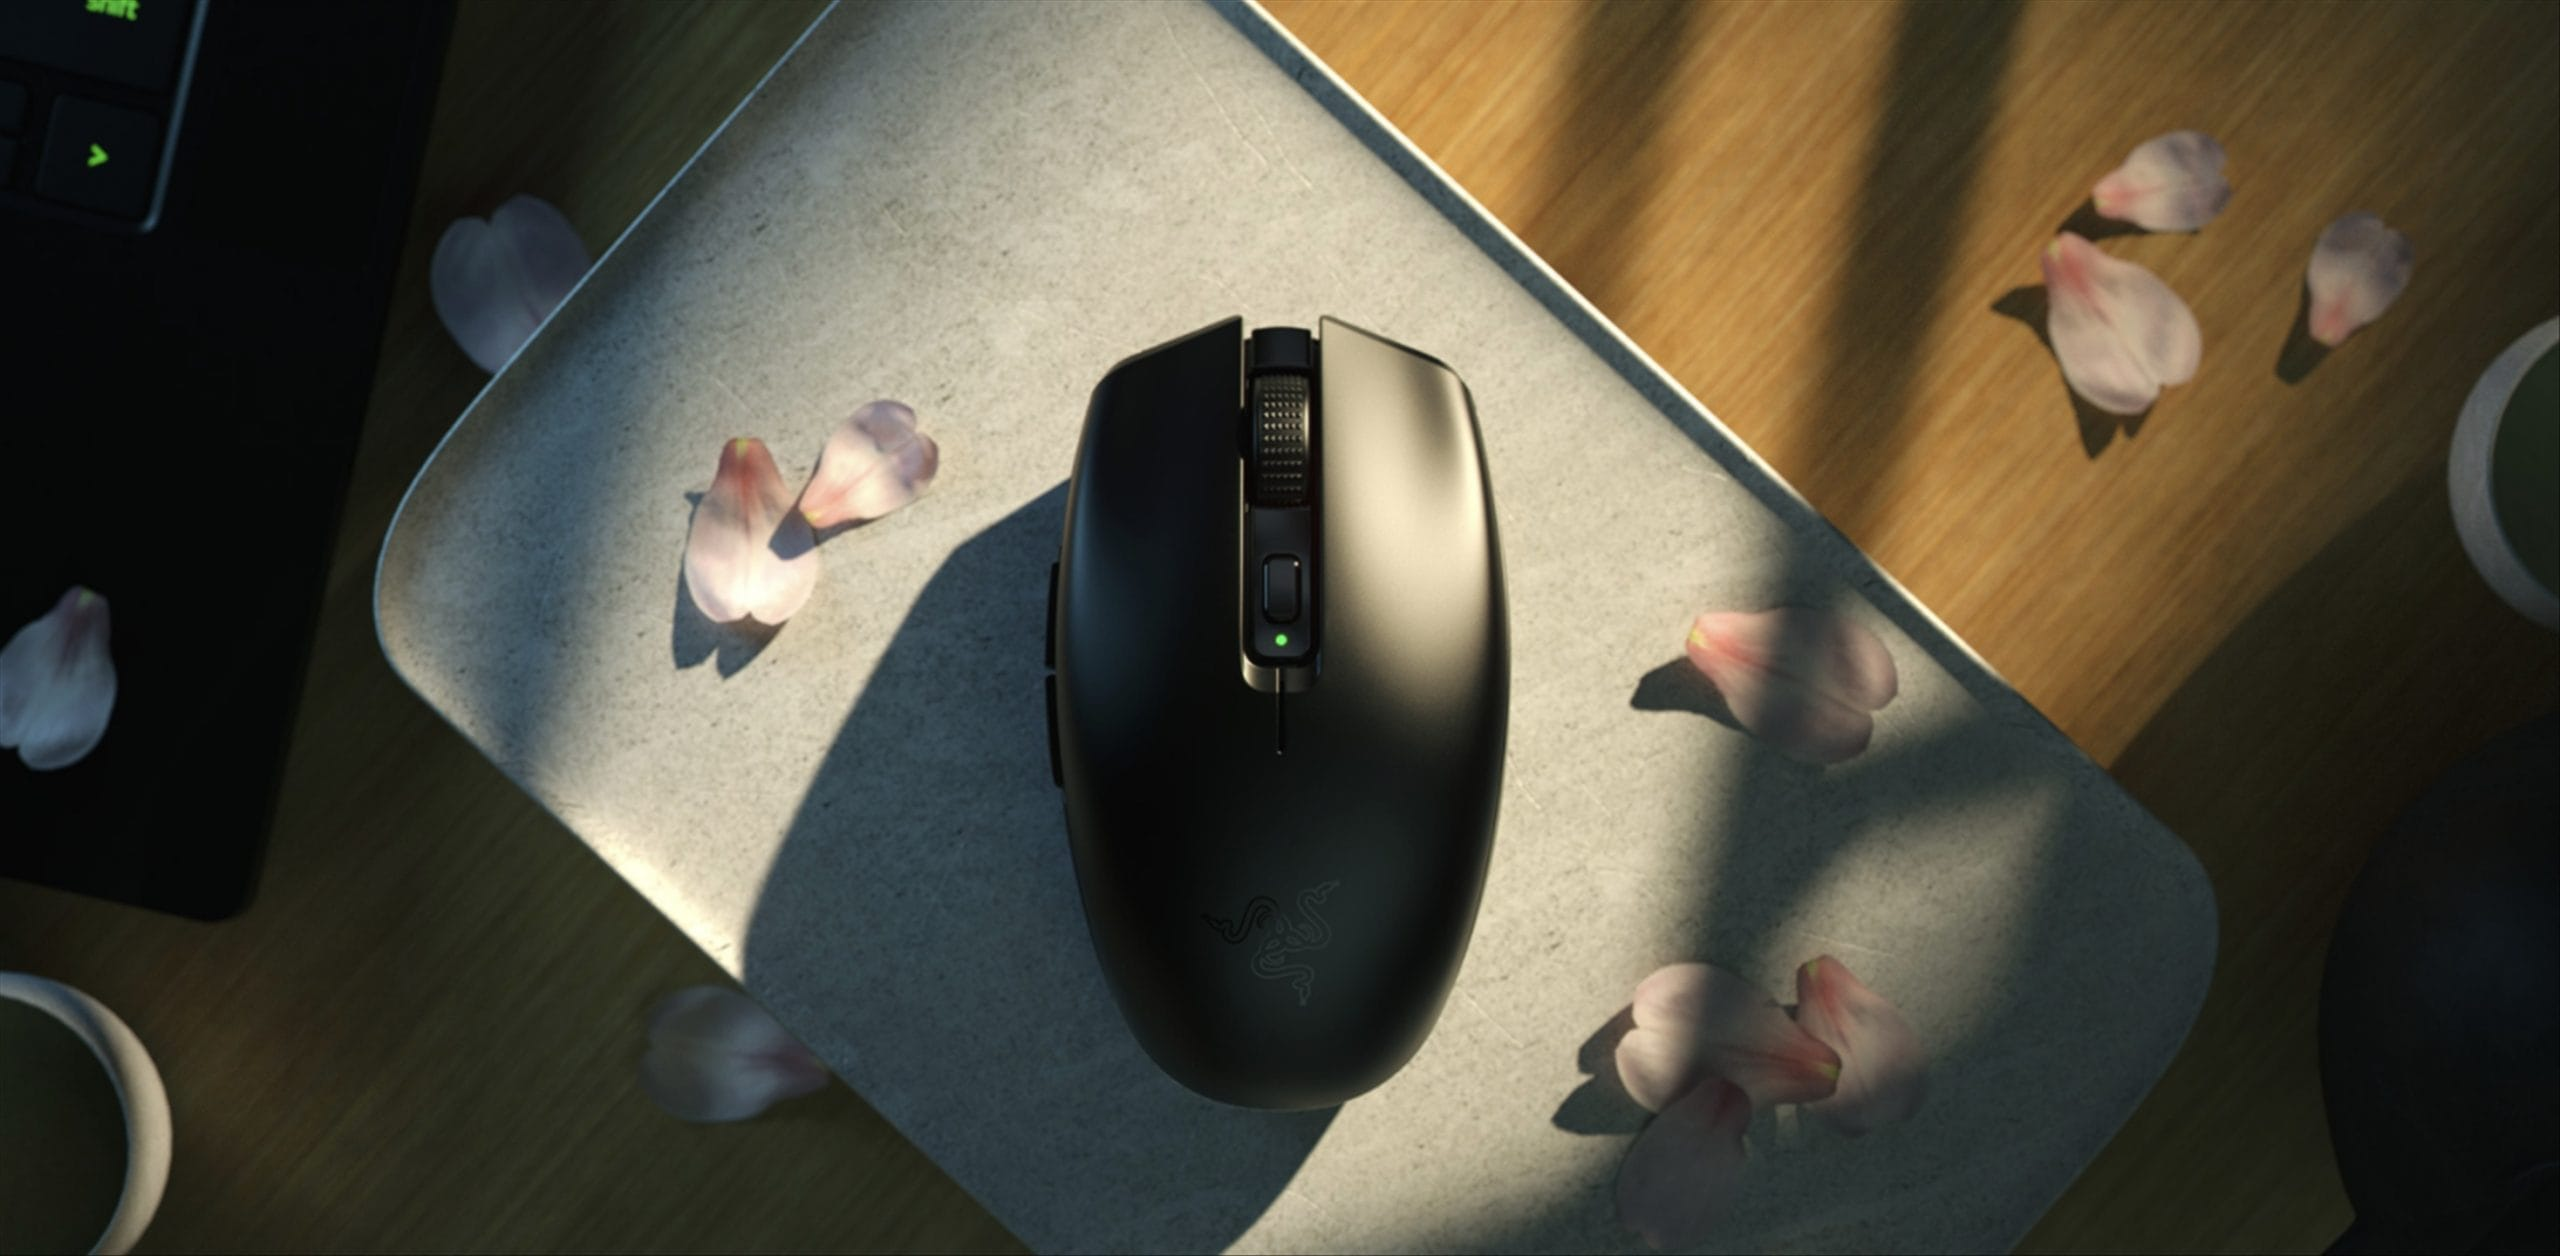 Razer releases a new wireless gaming mouse with 900 hours of battery life